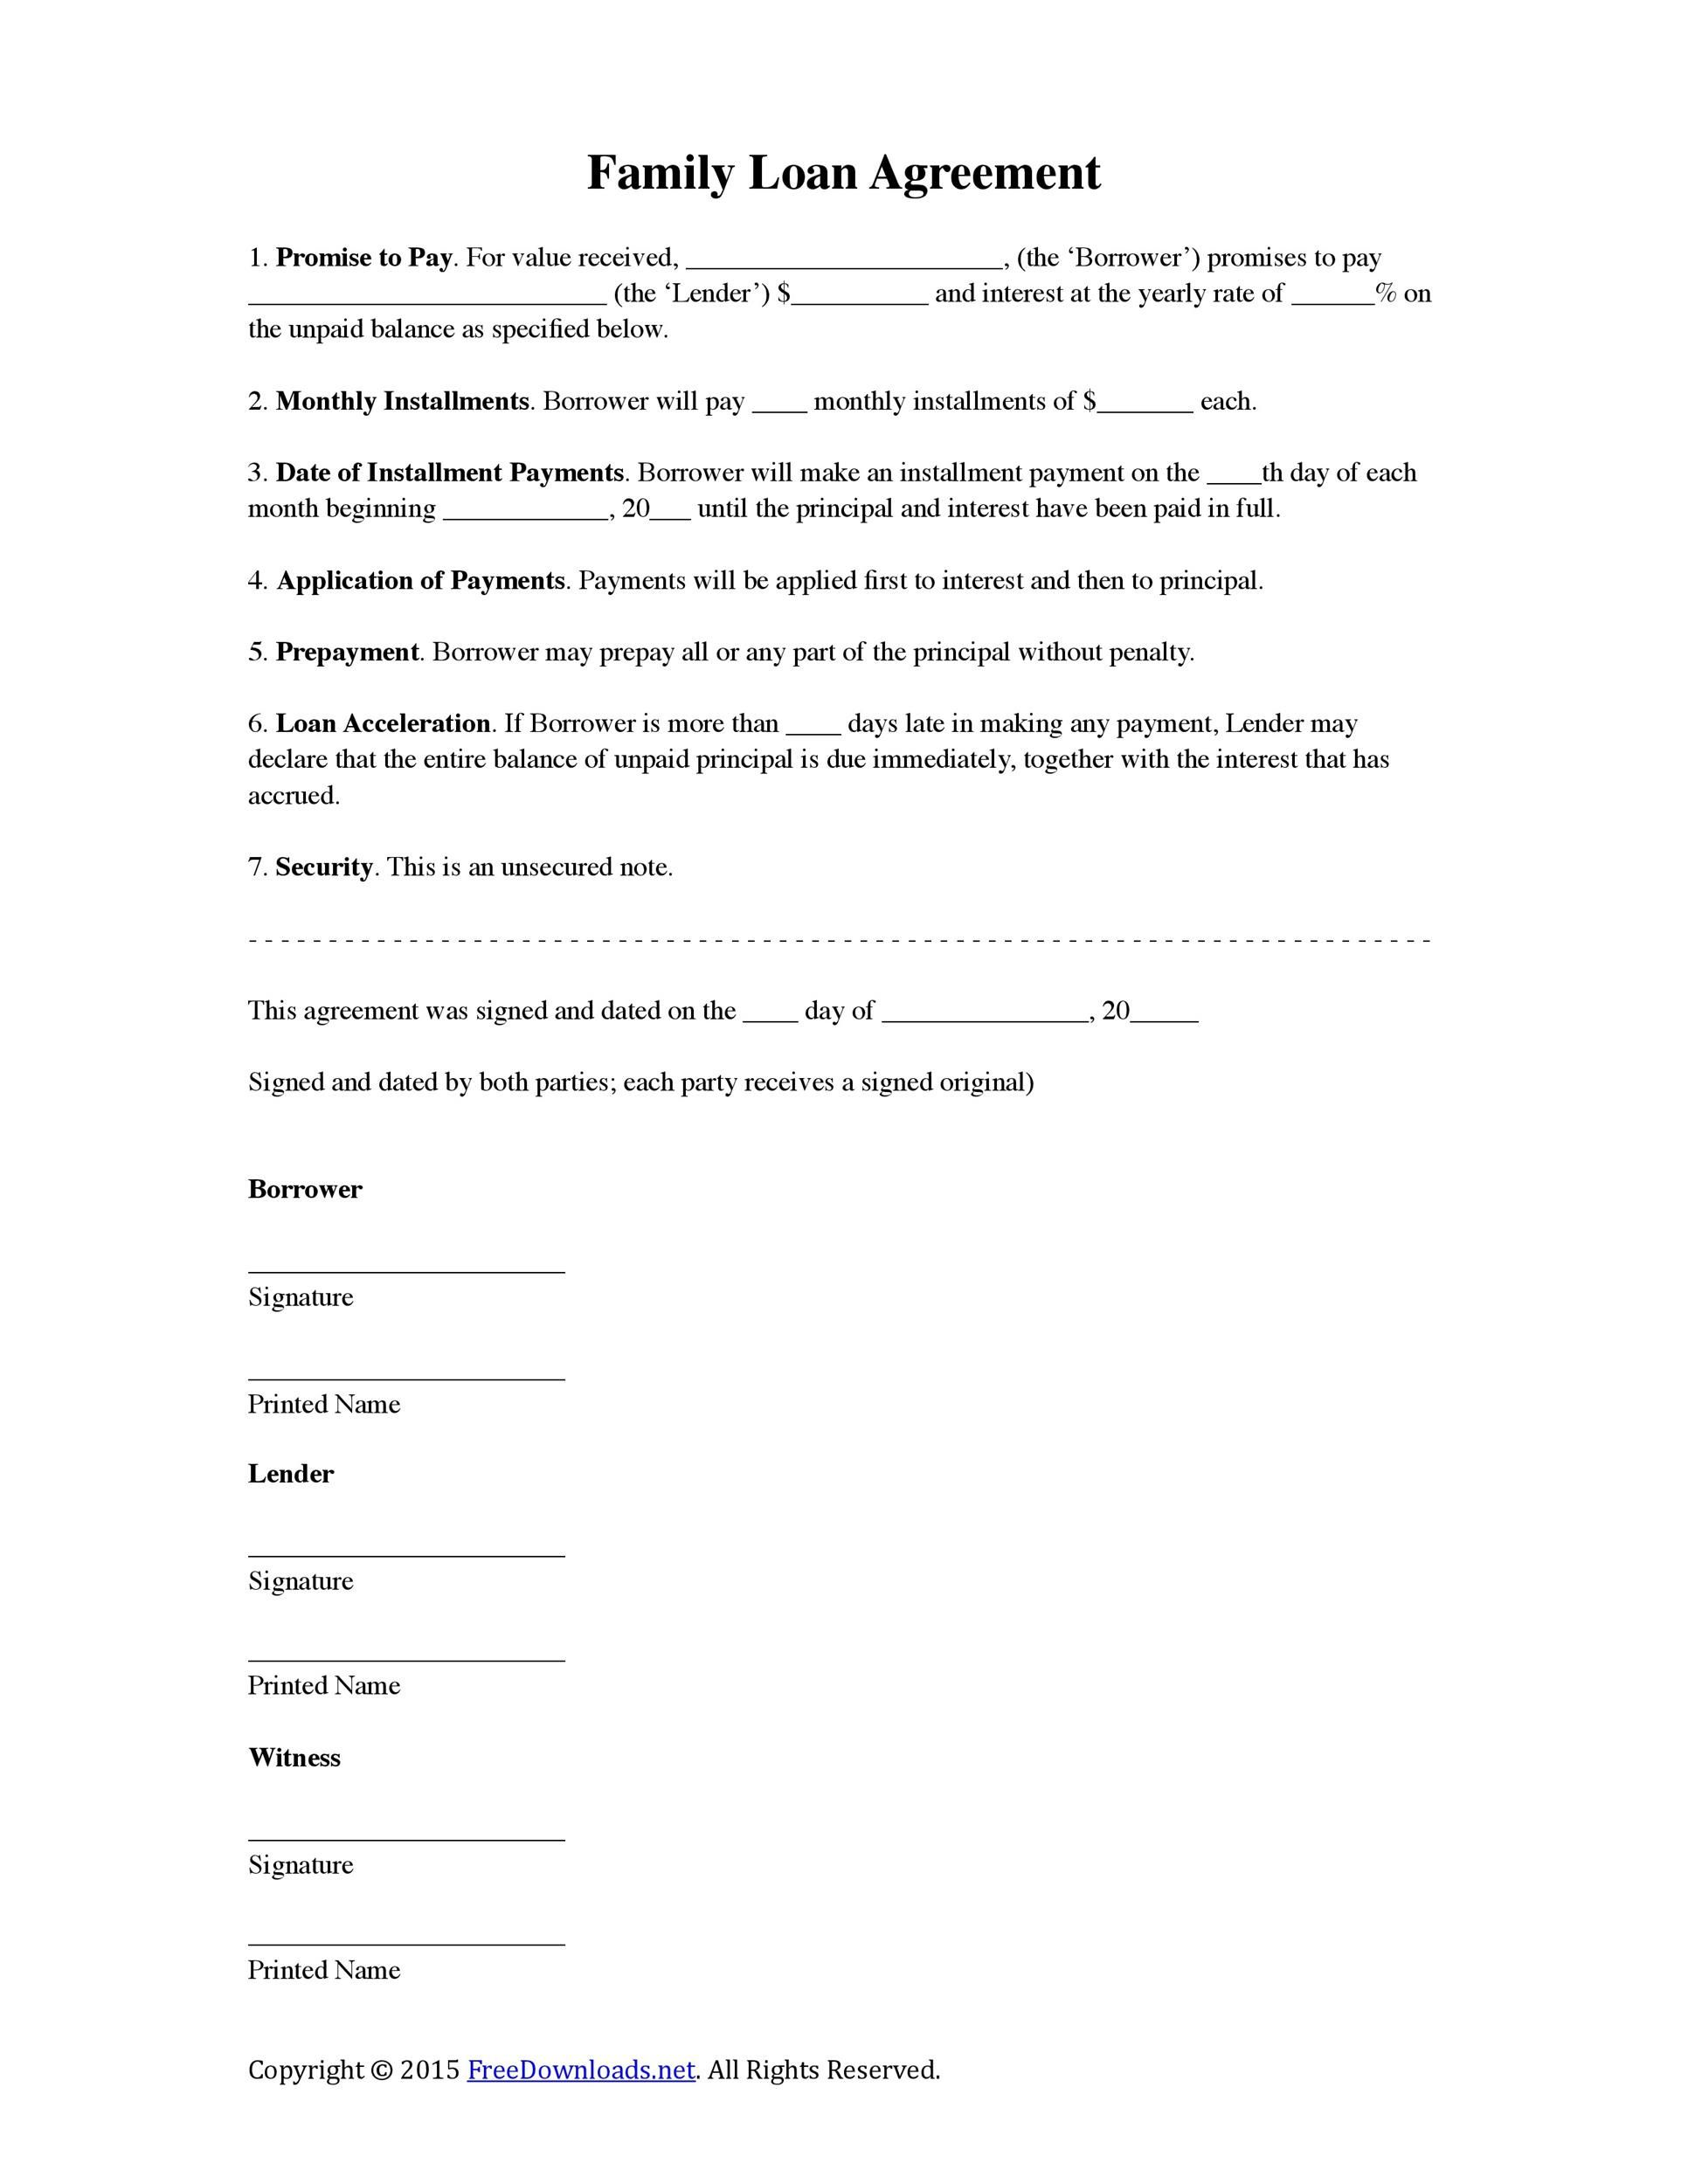 009 Stupendou Family Loan Agreement Template Uk Free High Definition Full